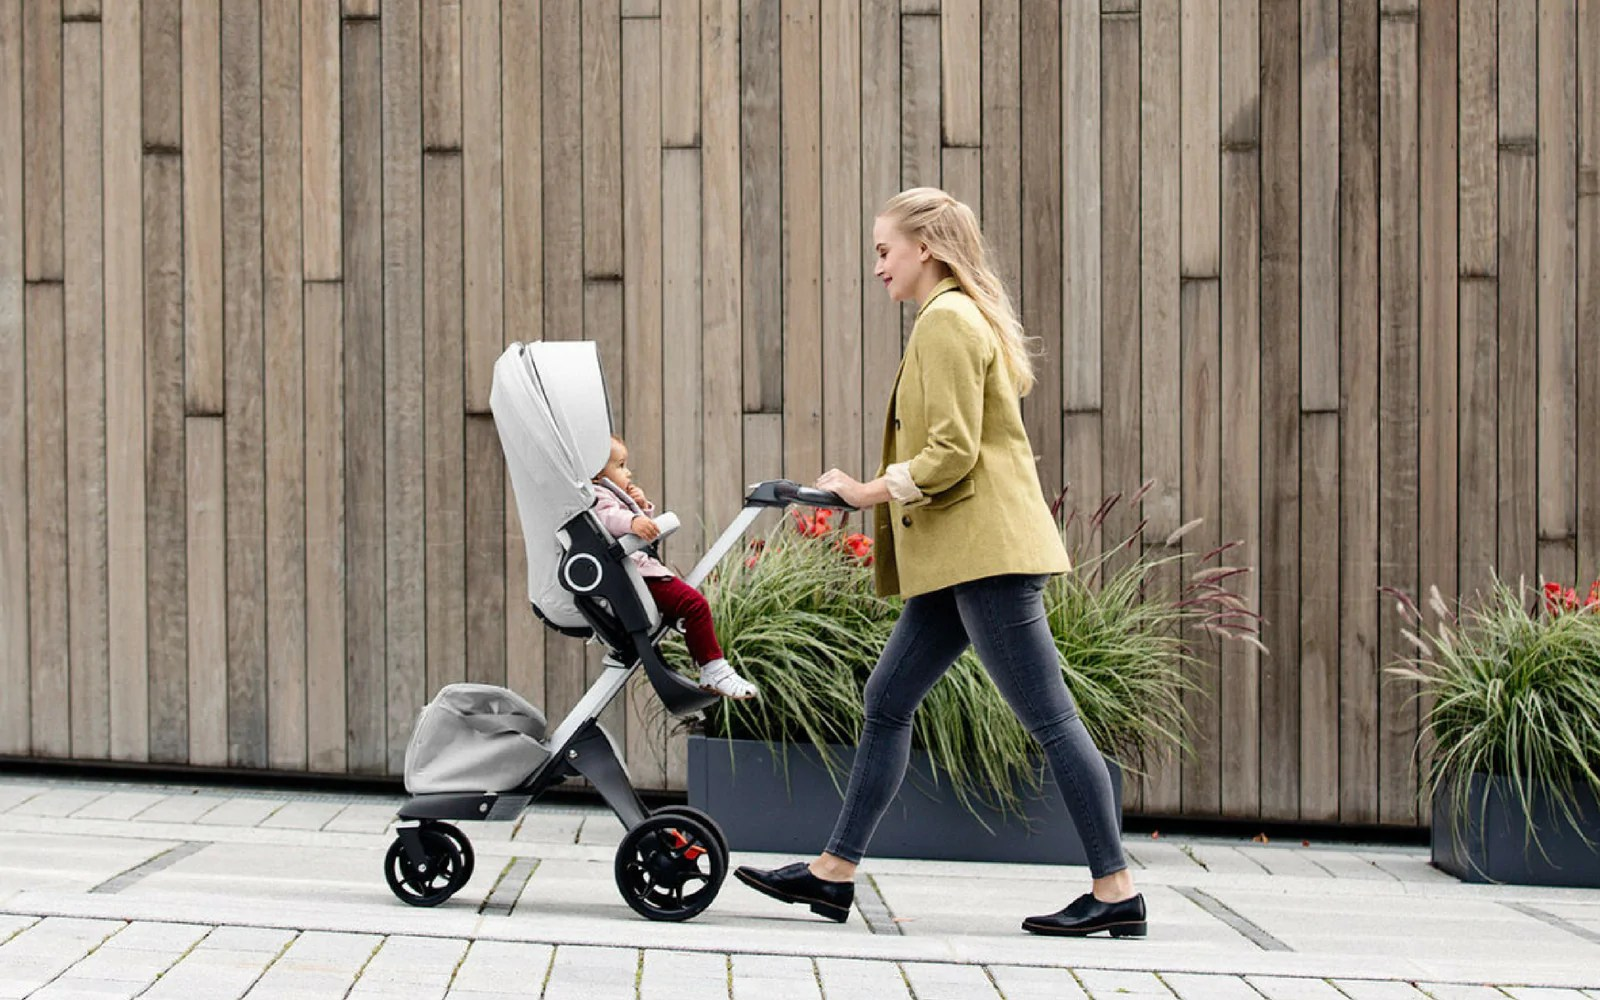 Stokke Maxi Cosi Car Seat Infant Car Seats Compatible With Stokke Xplory Stroller